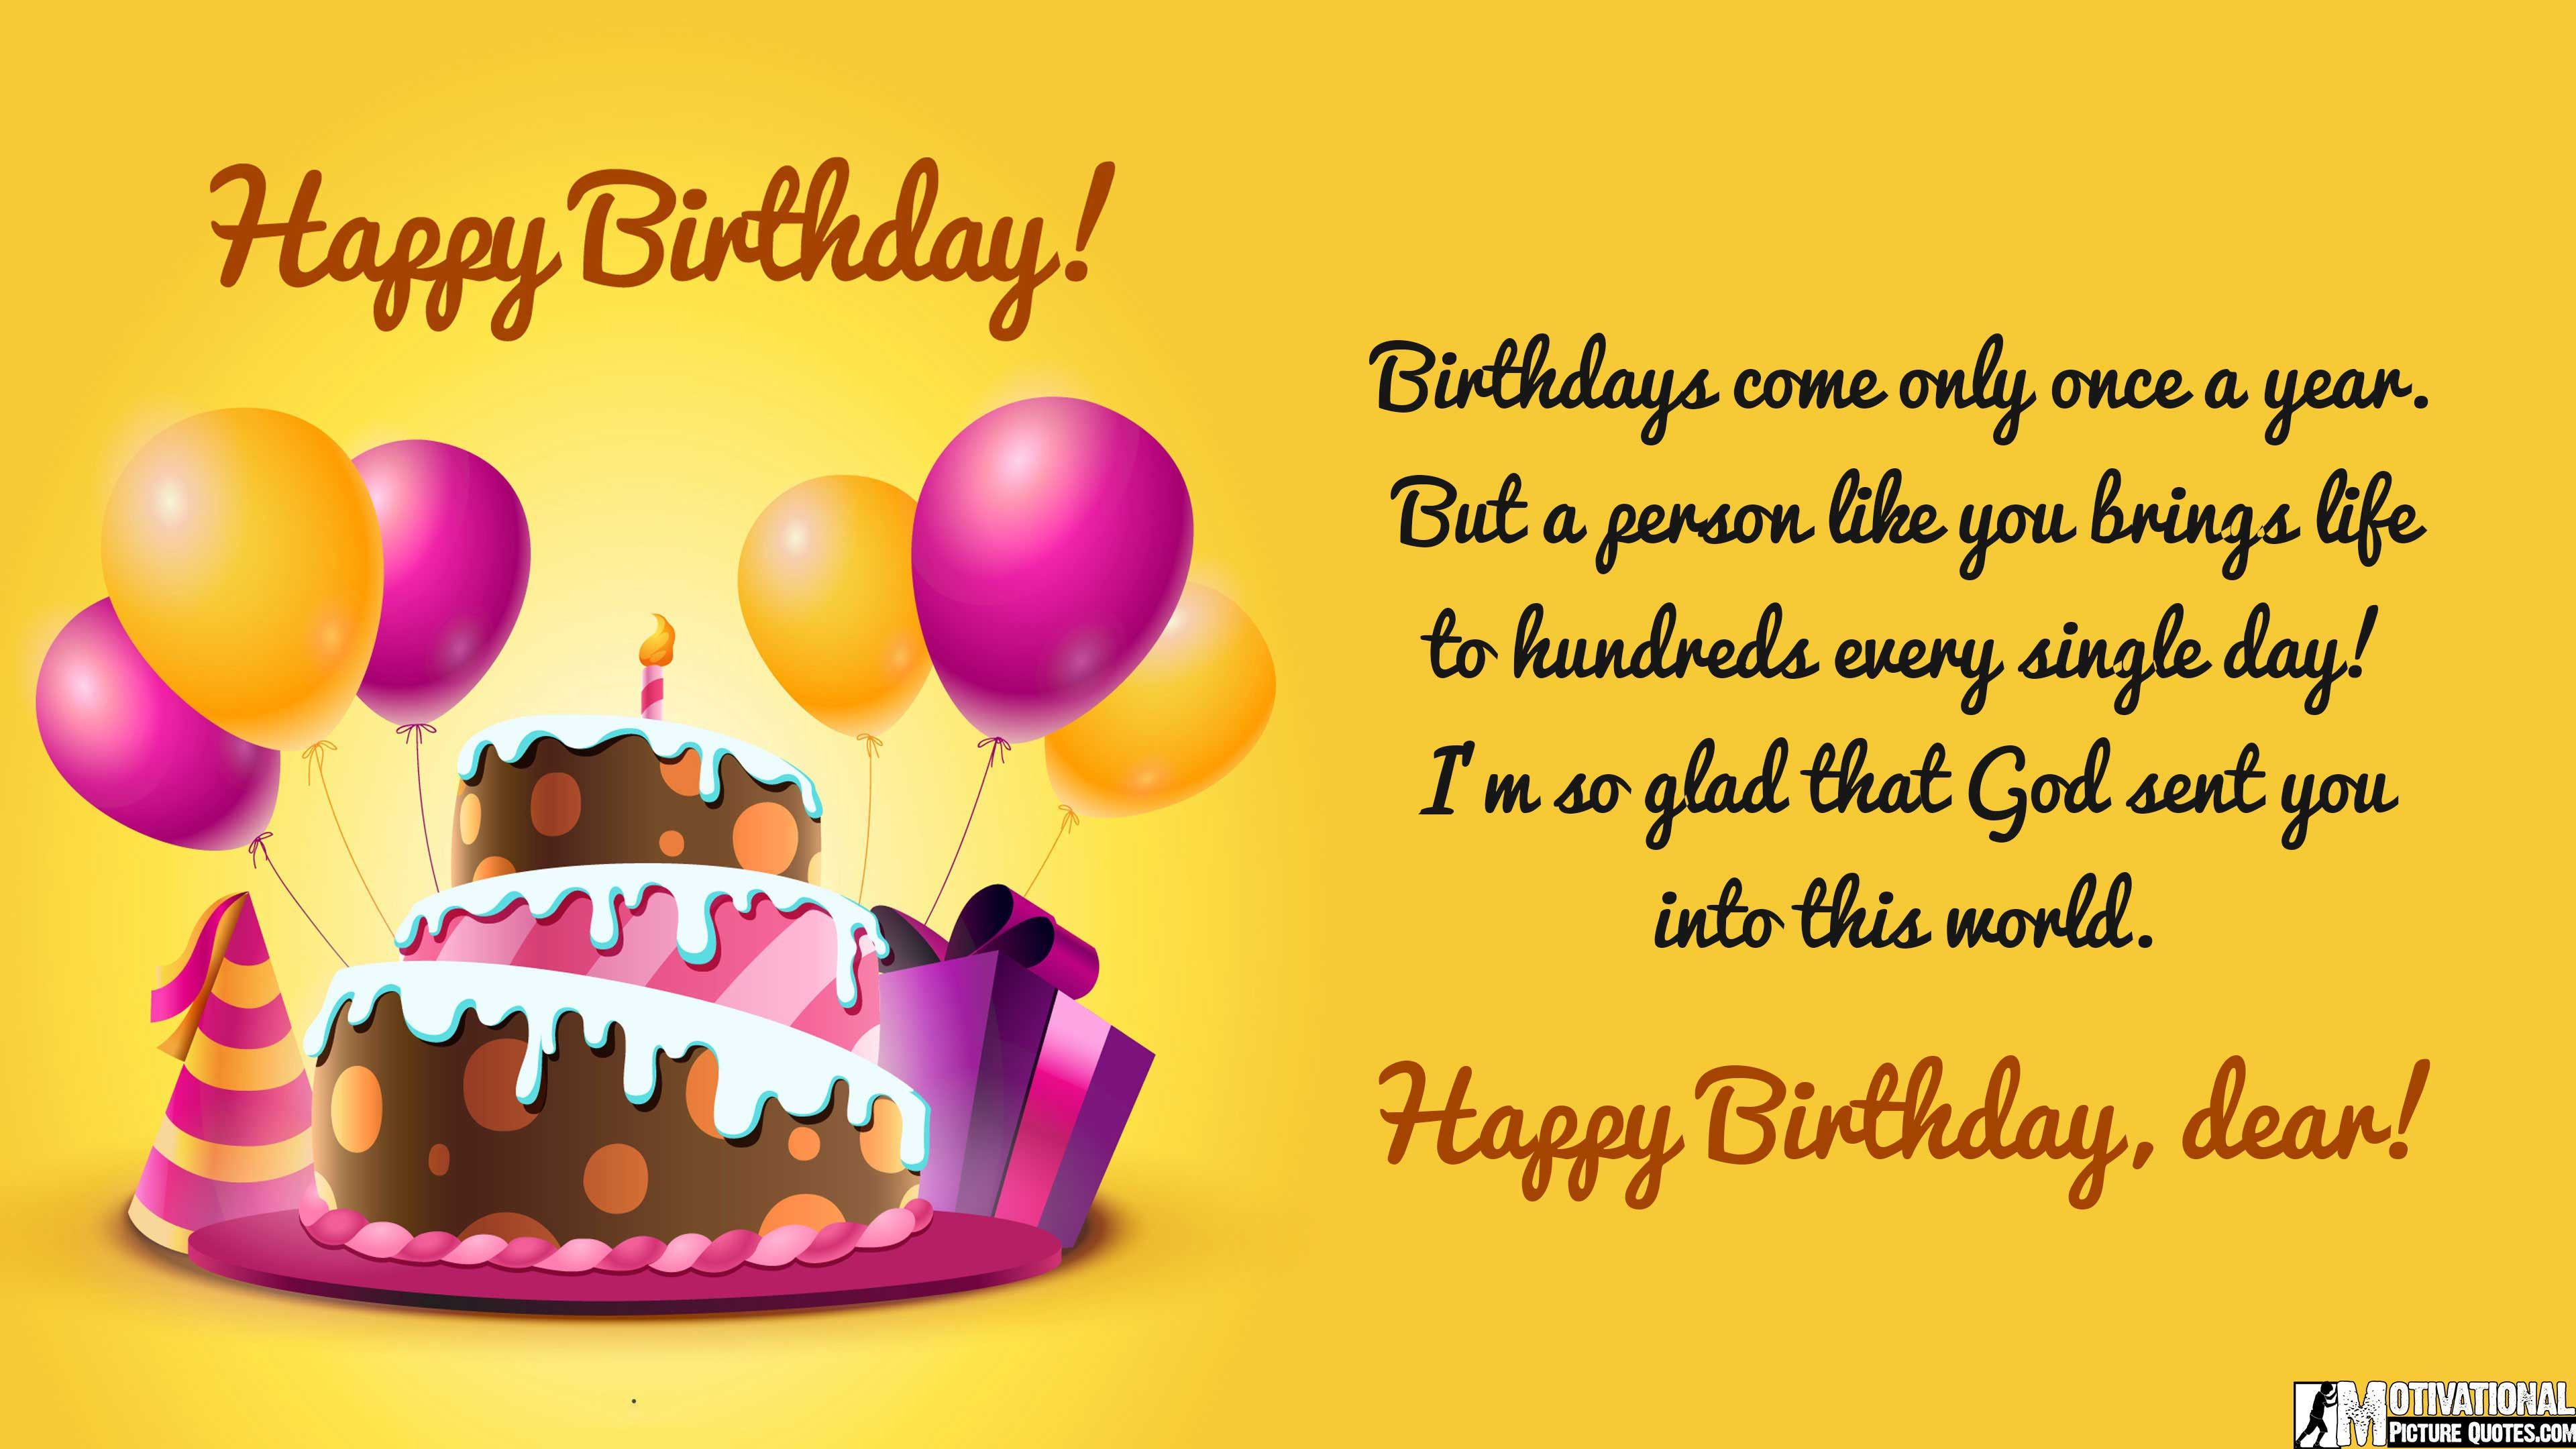 Best Birthday Wishes Quotes New 50 Happy Birthday For Him With Quotes Ilove Message Happy Birthday Cousin Birthday Quotes Inspirational Birthday Wishes For Him